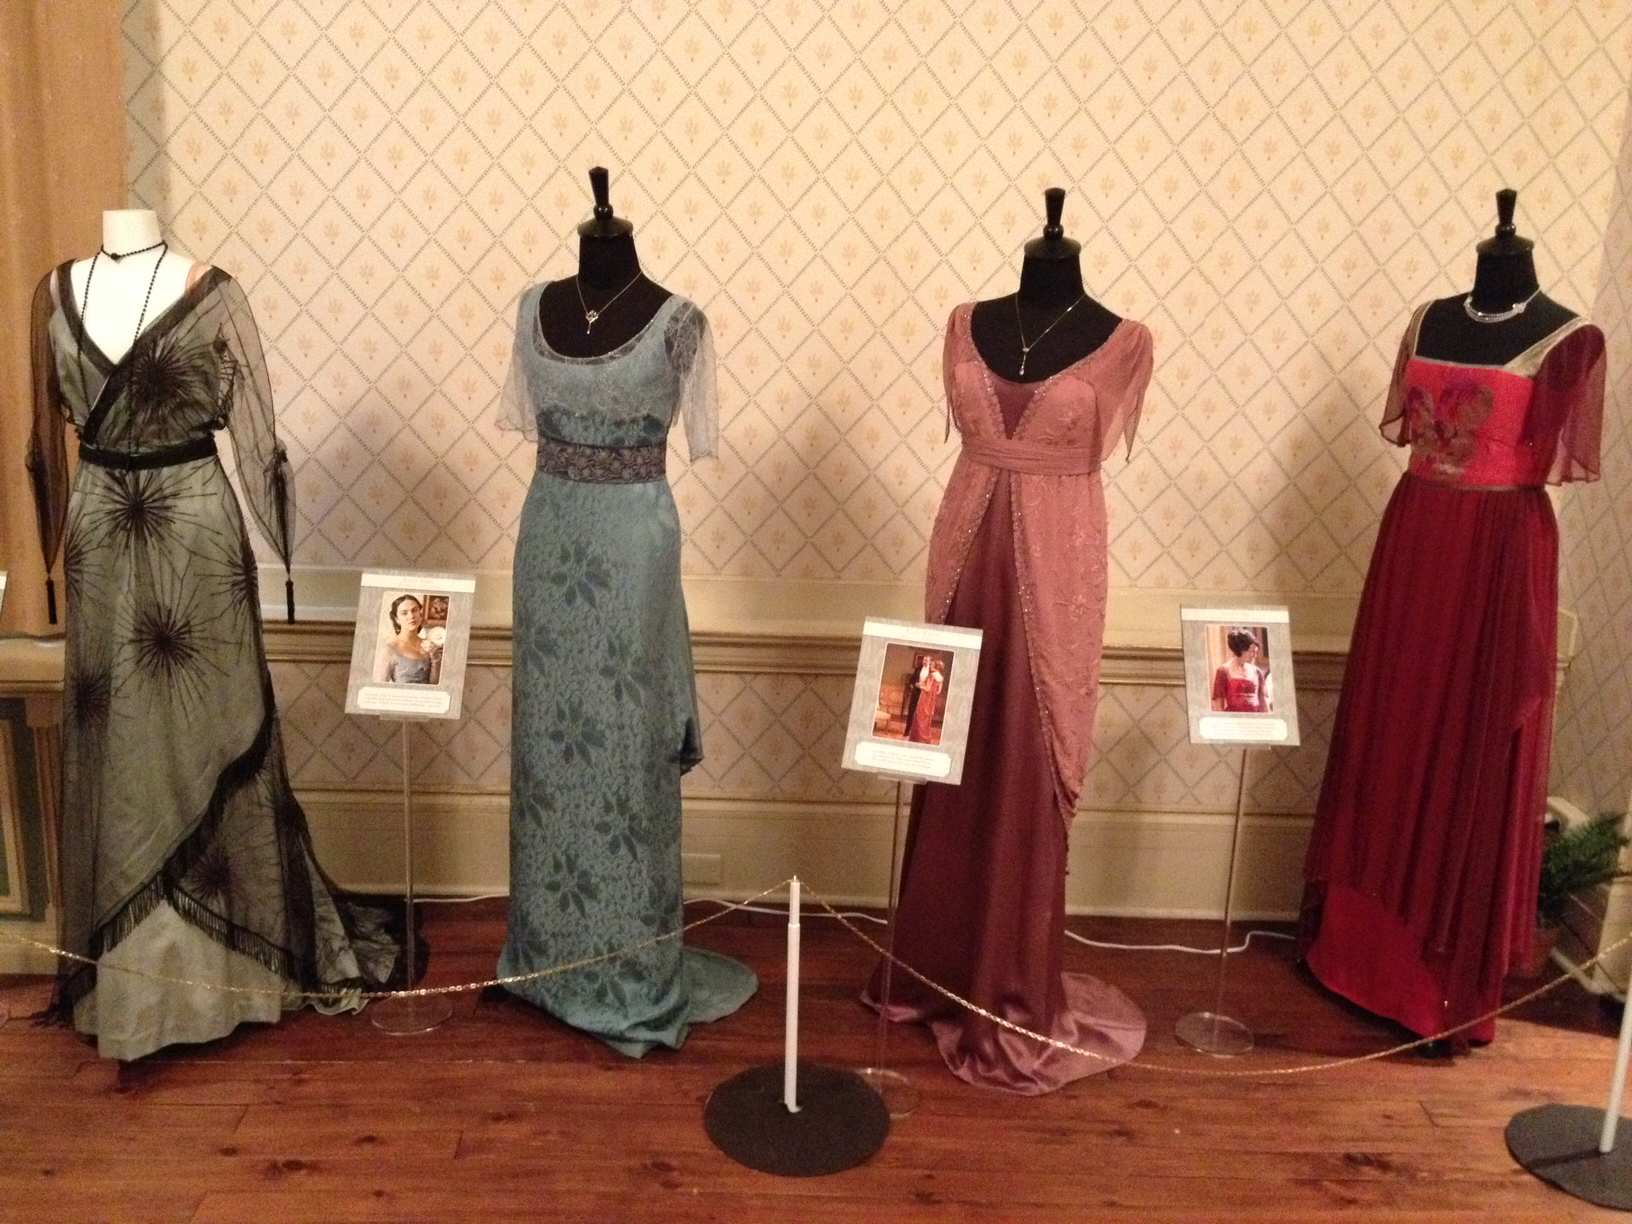 Downton Dresses on Display at Spadina House